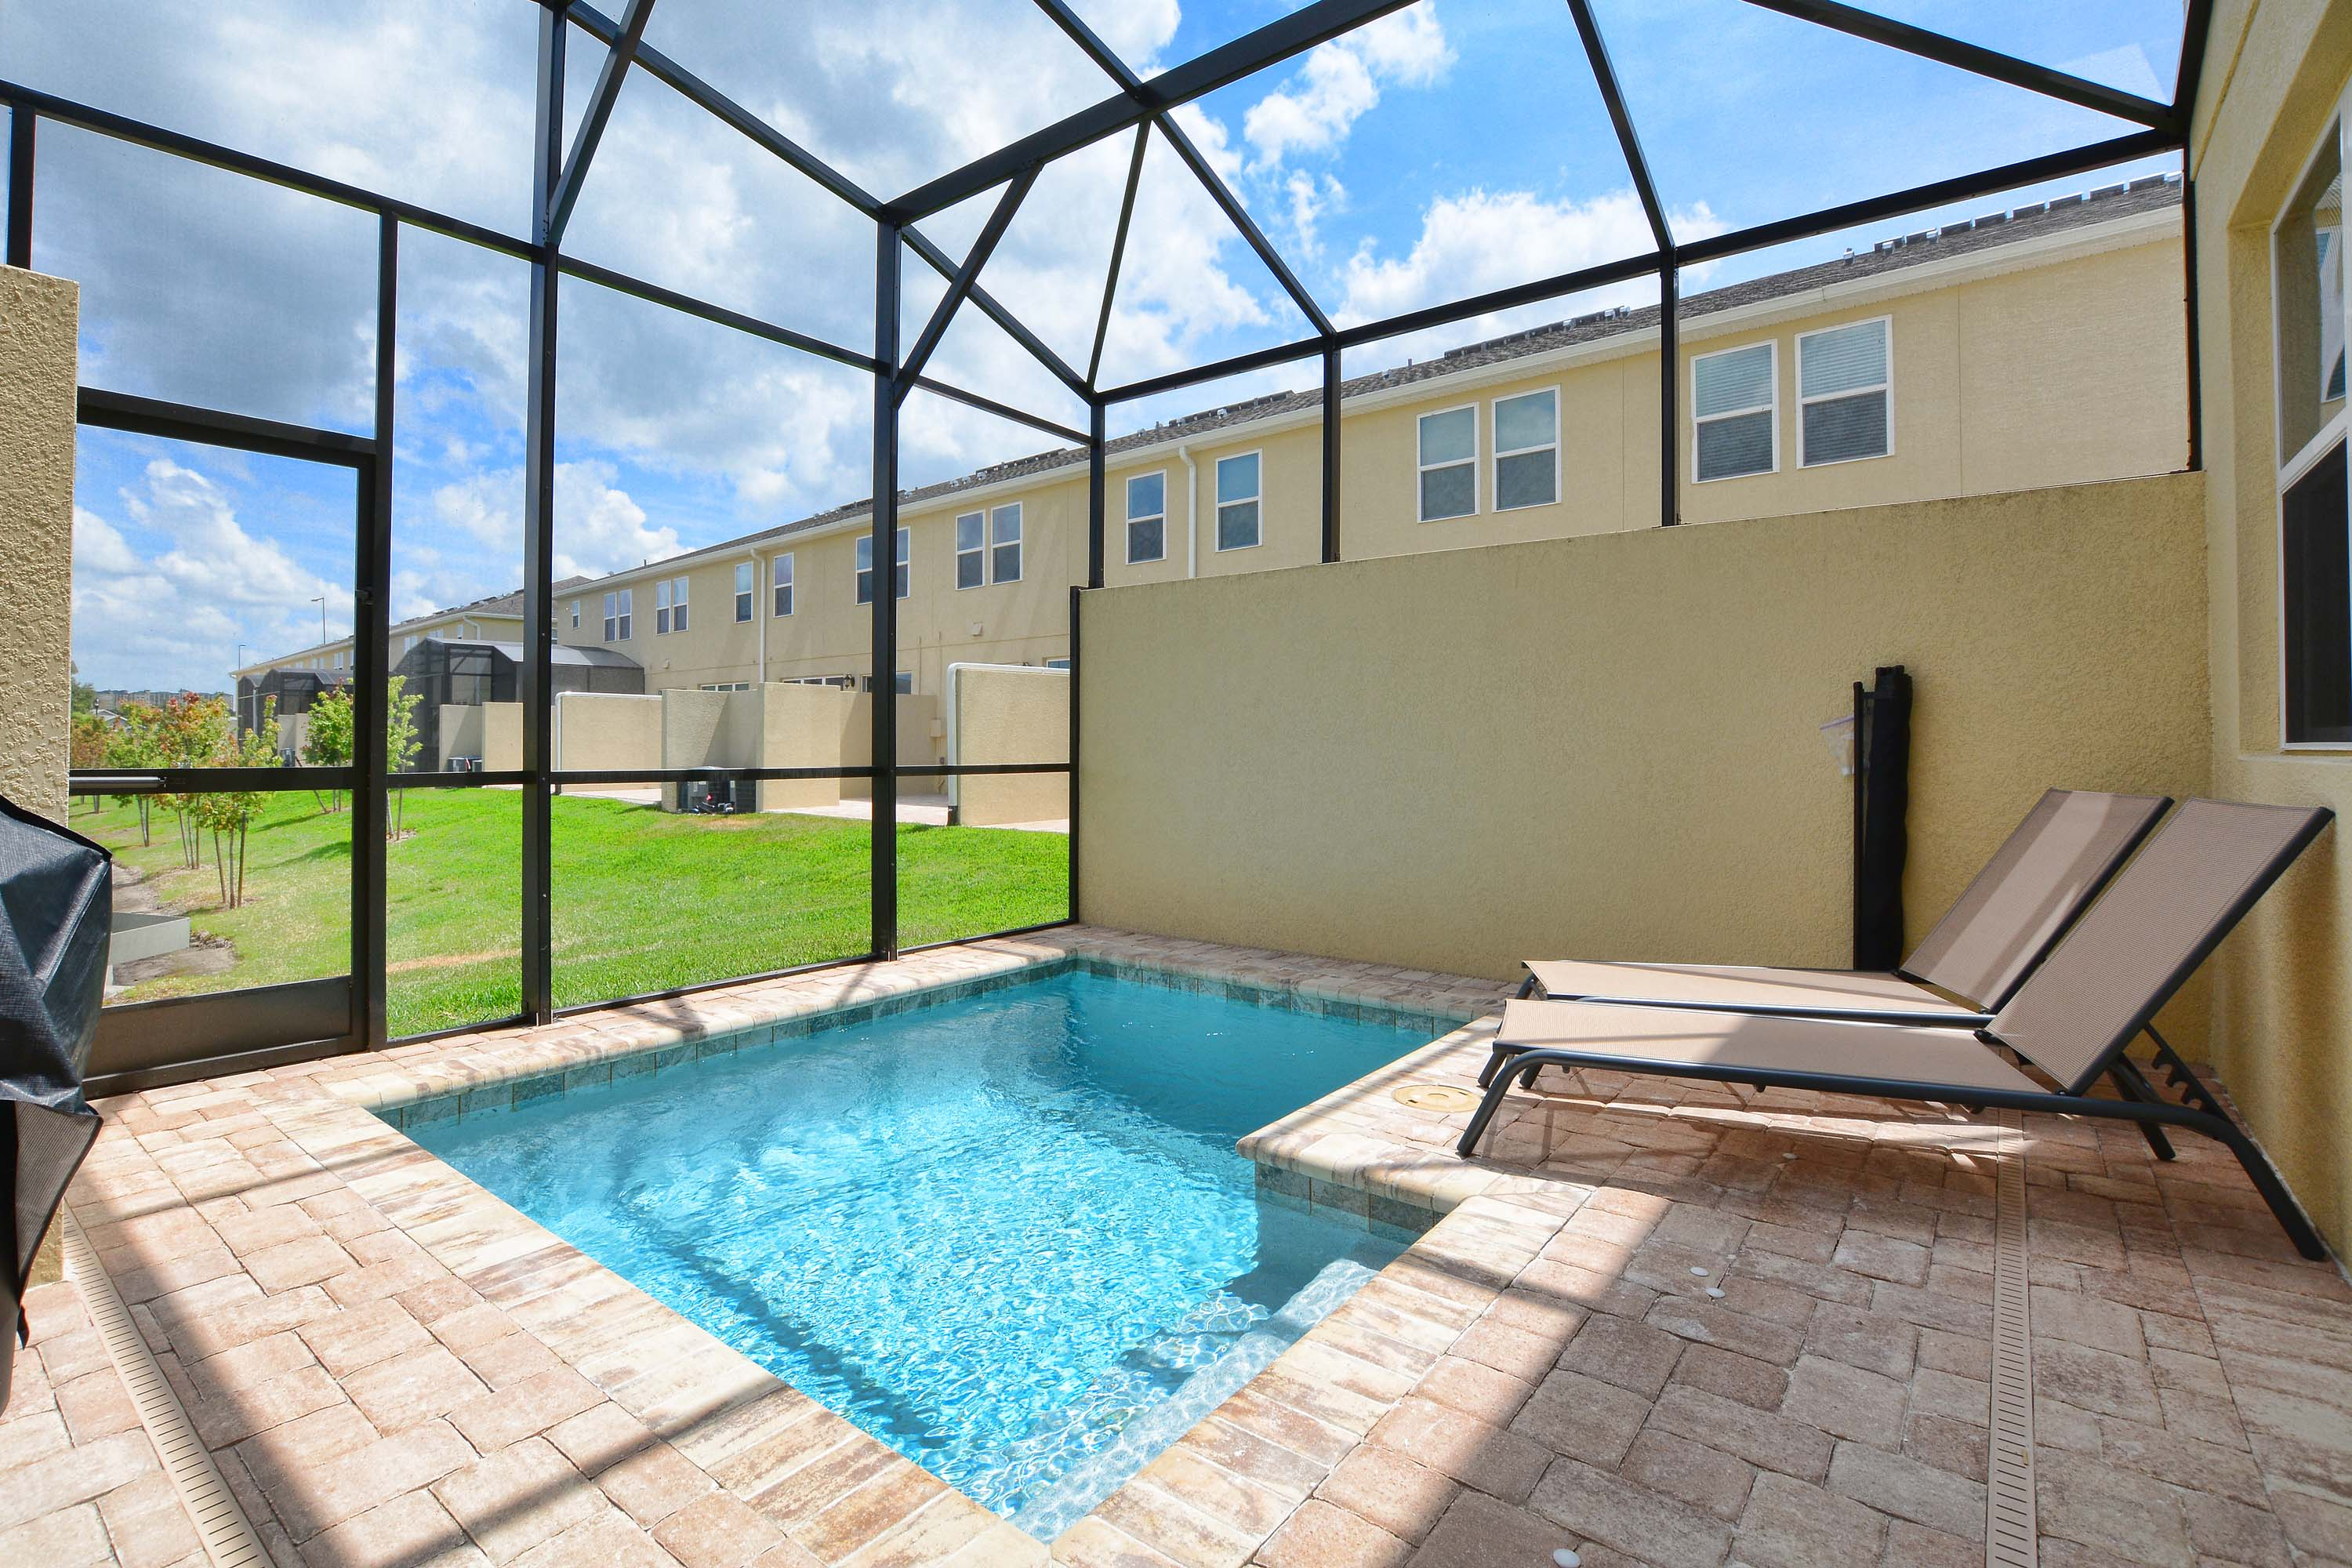 Vacation Homes For Rent In Kissimmee Fl Compass Bay Unit 1953cy